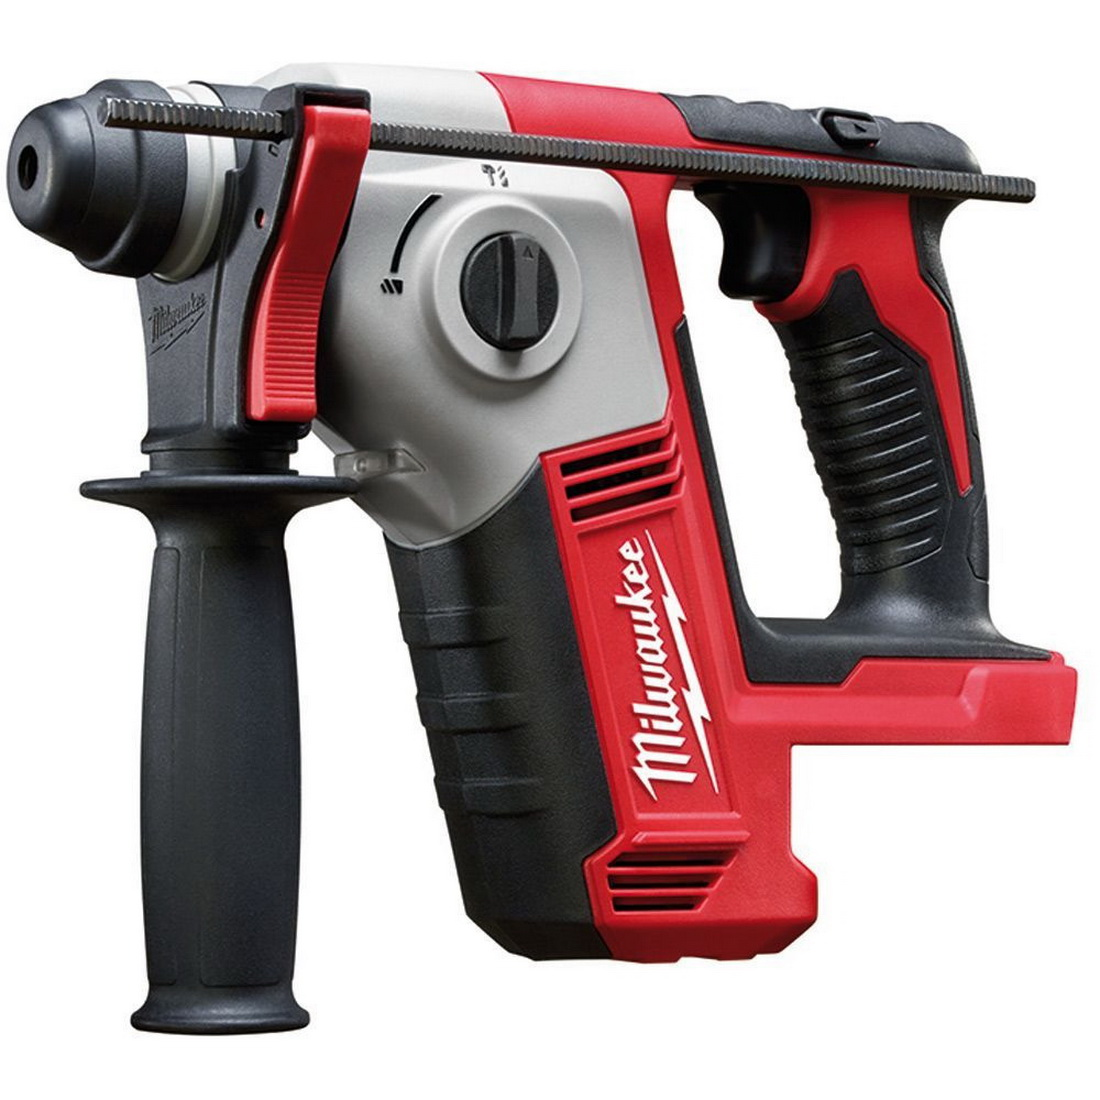 M18 SDS Plus Compact Rotary Hammer 16mm (Tool Only)